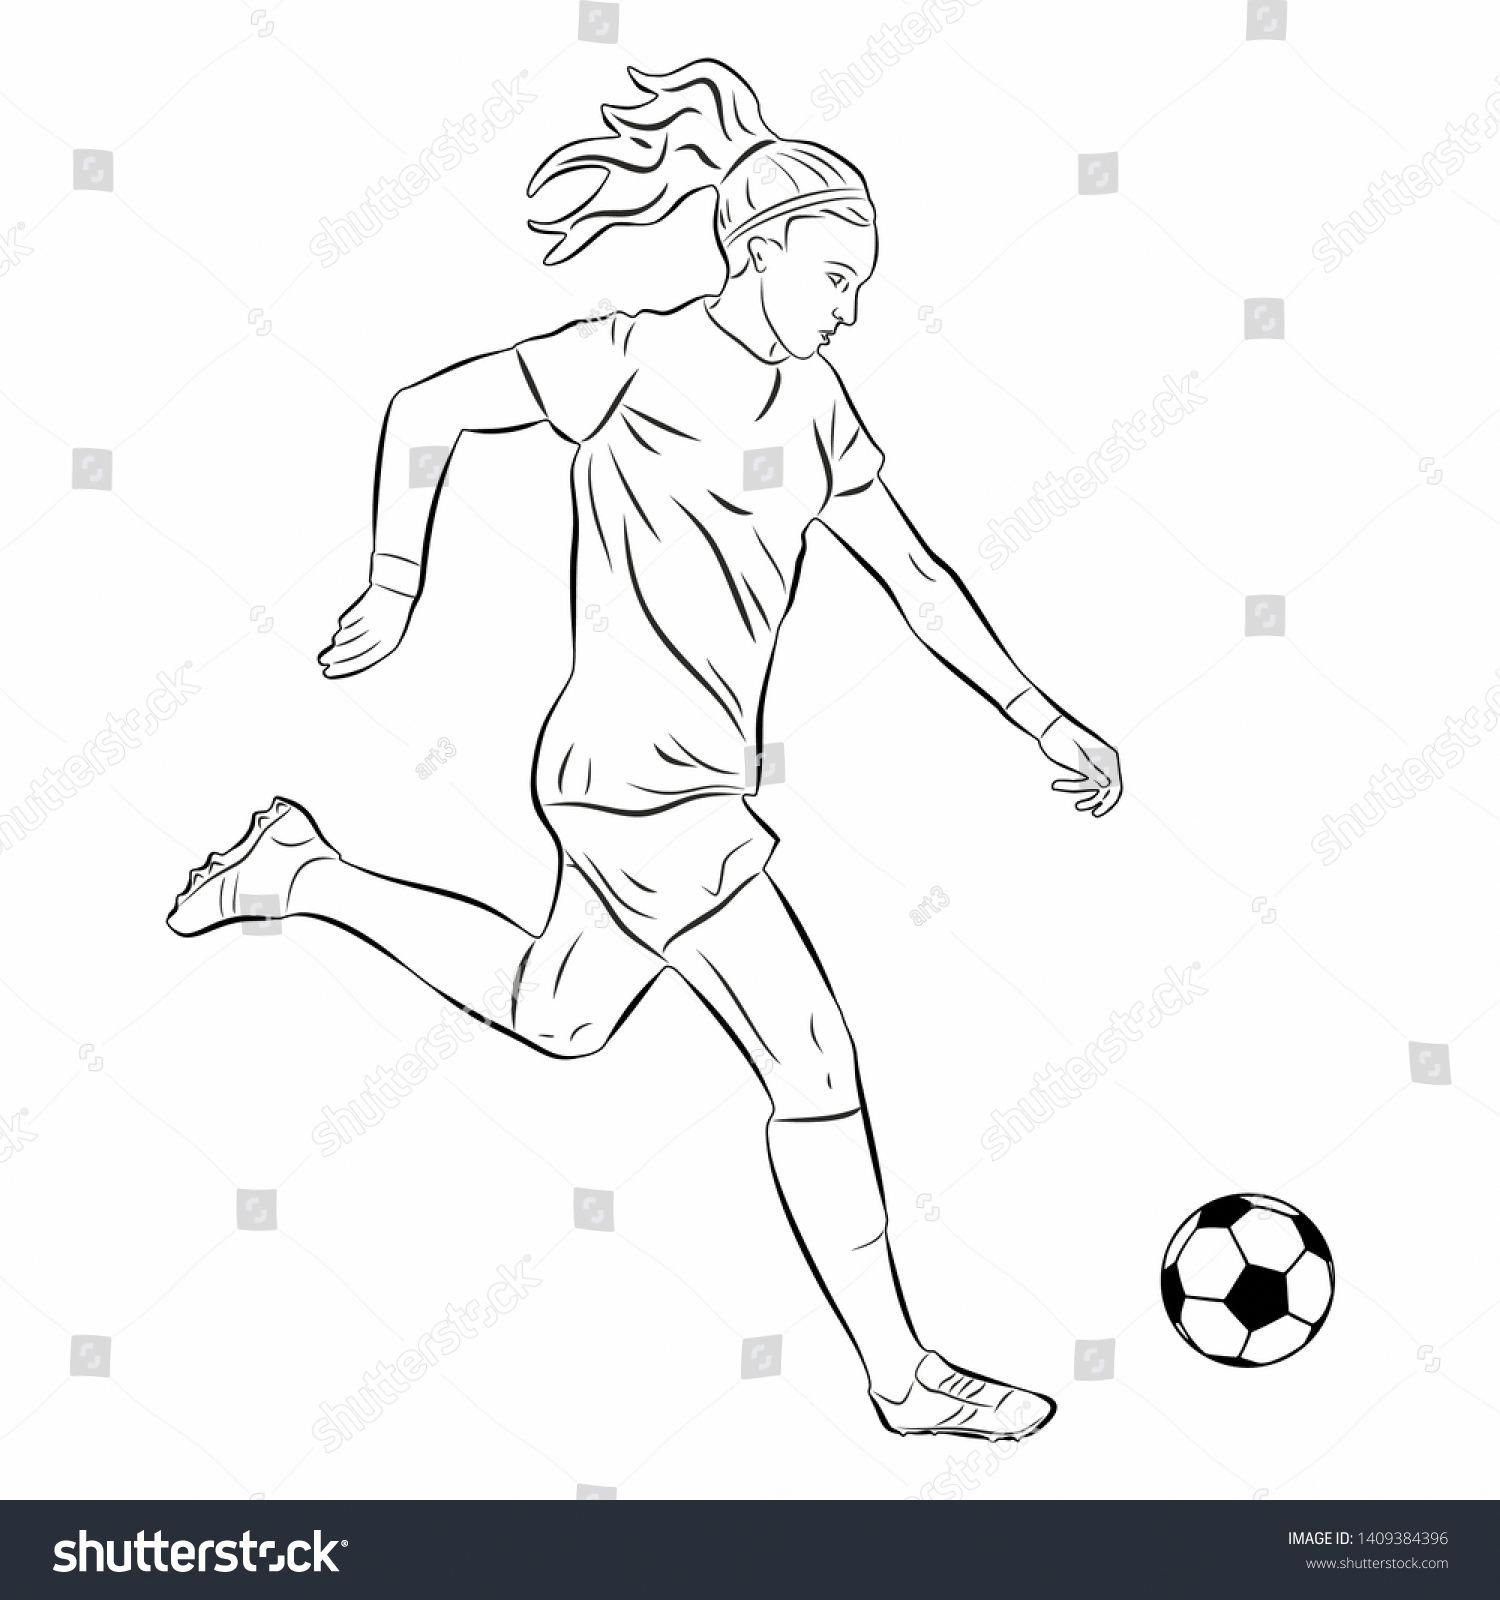 Isolated Illustration Of Woman Soccer Player Black And White Drawing White Background Ad Ad Woman Soccer I Soccer Drawing Soccer Players Womens Soccer